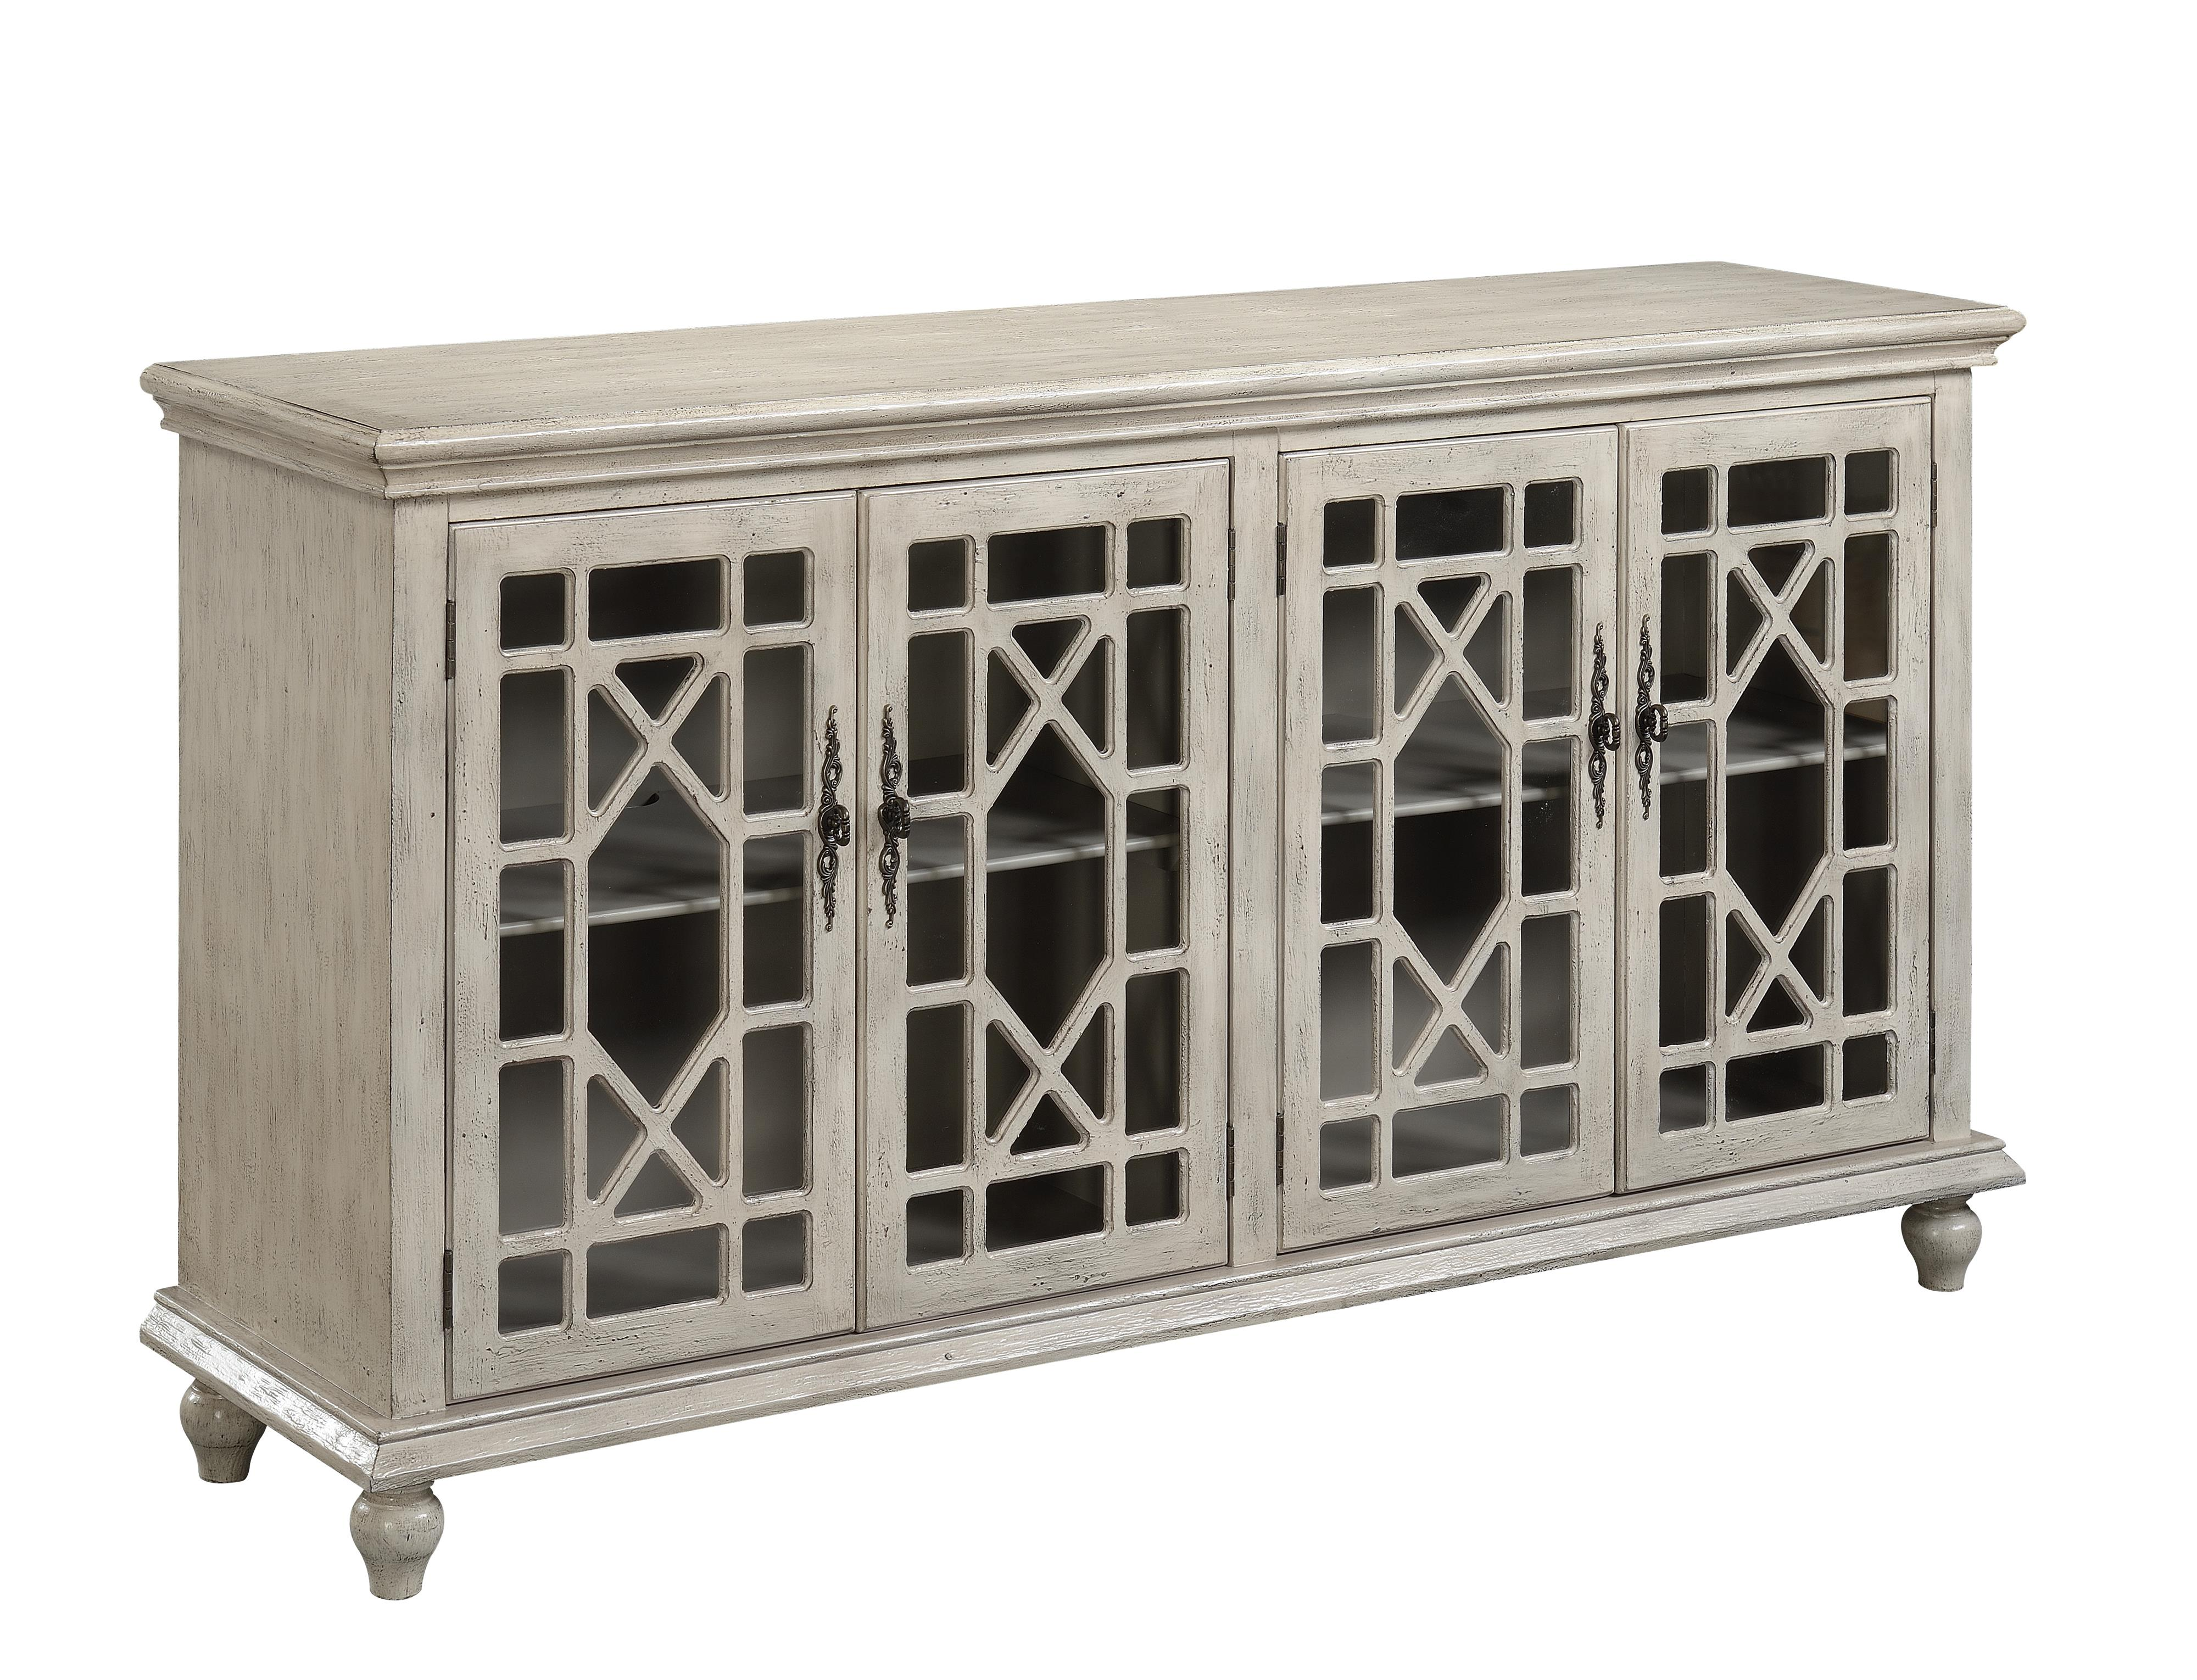 Accents by Andy Stein Media Credenza  by Coast to Coast Imports at Value City Furniture